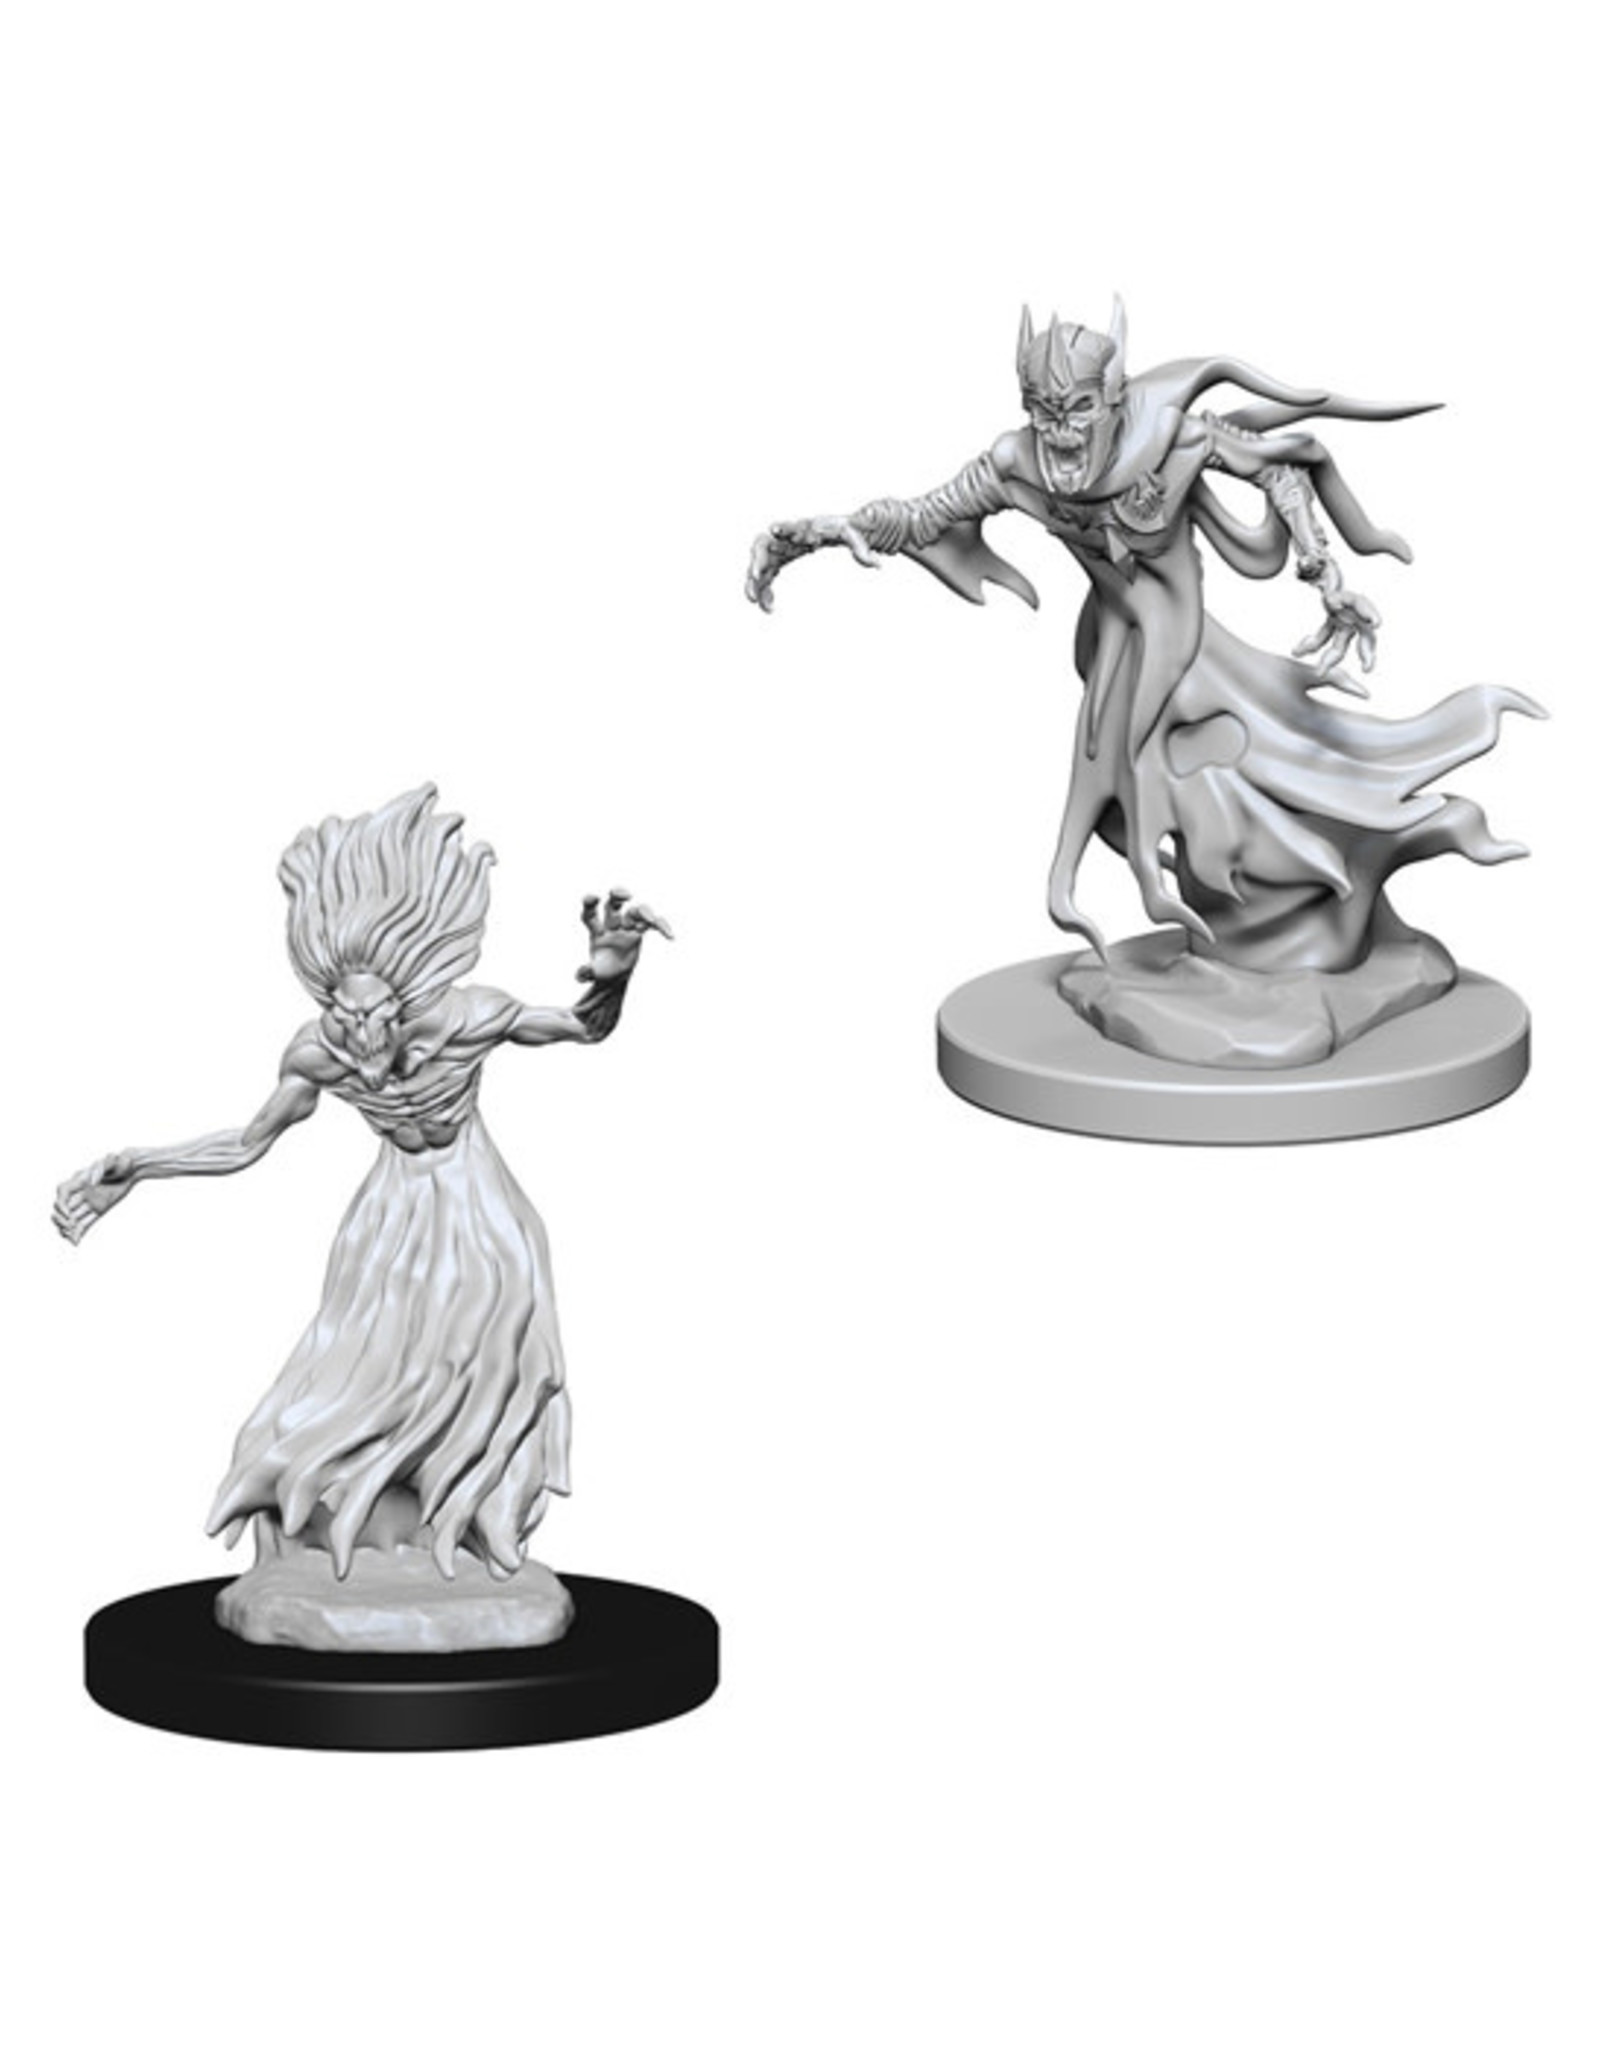 Dungeons & Dragons Dungeons & Dragons: Nolzur's - Wraith & Specter